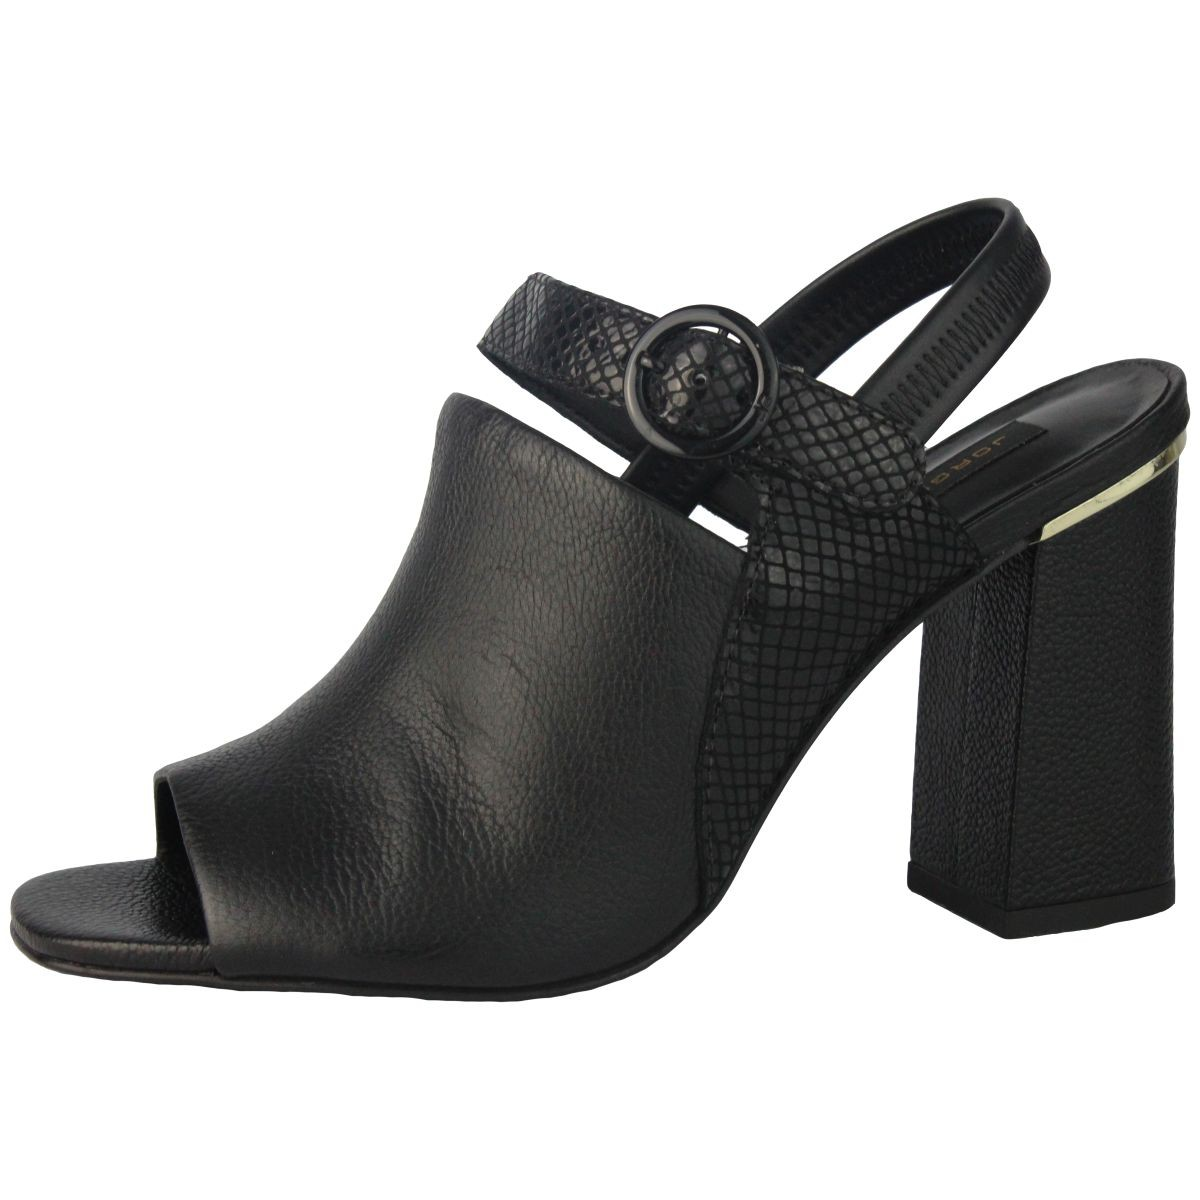 ANKLE BOOT JORGE BISCHOFF J31130008A02